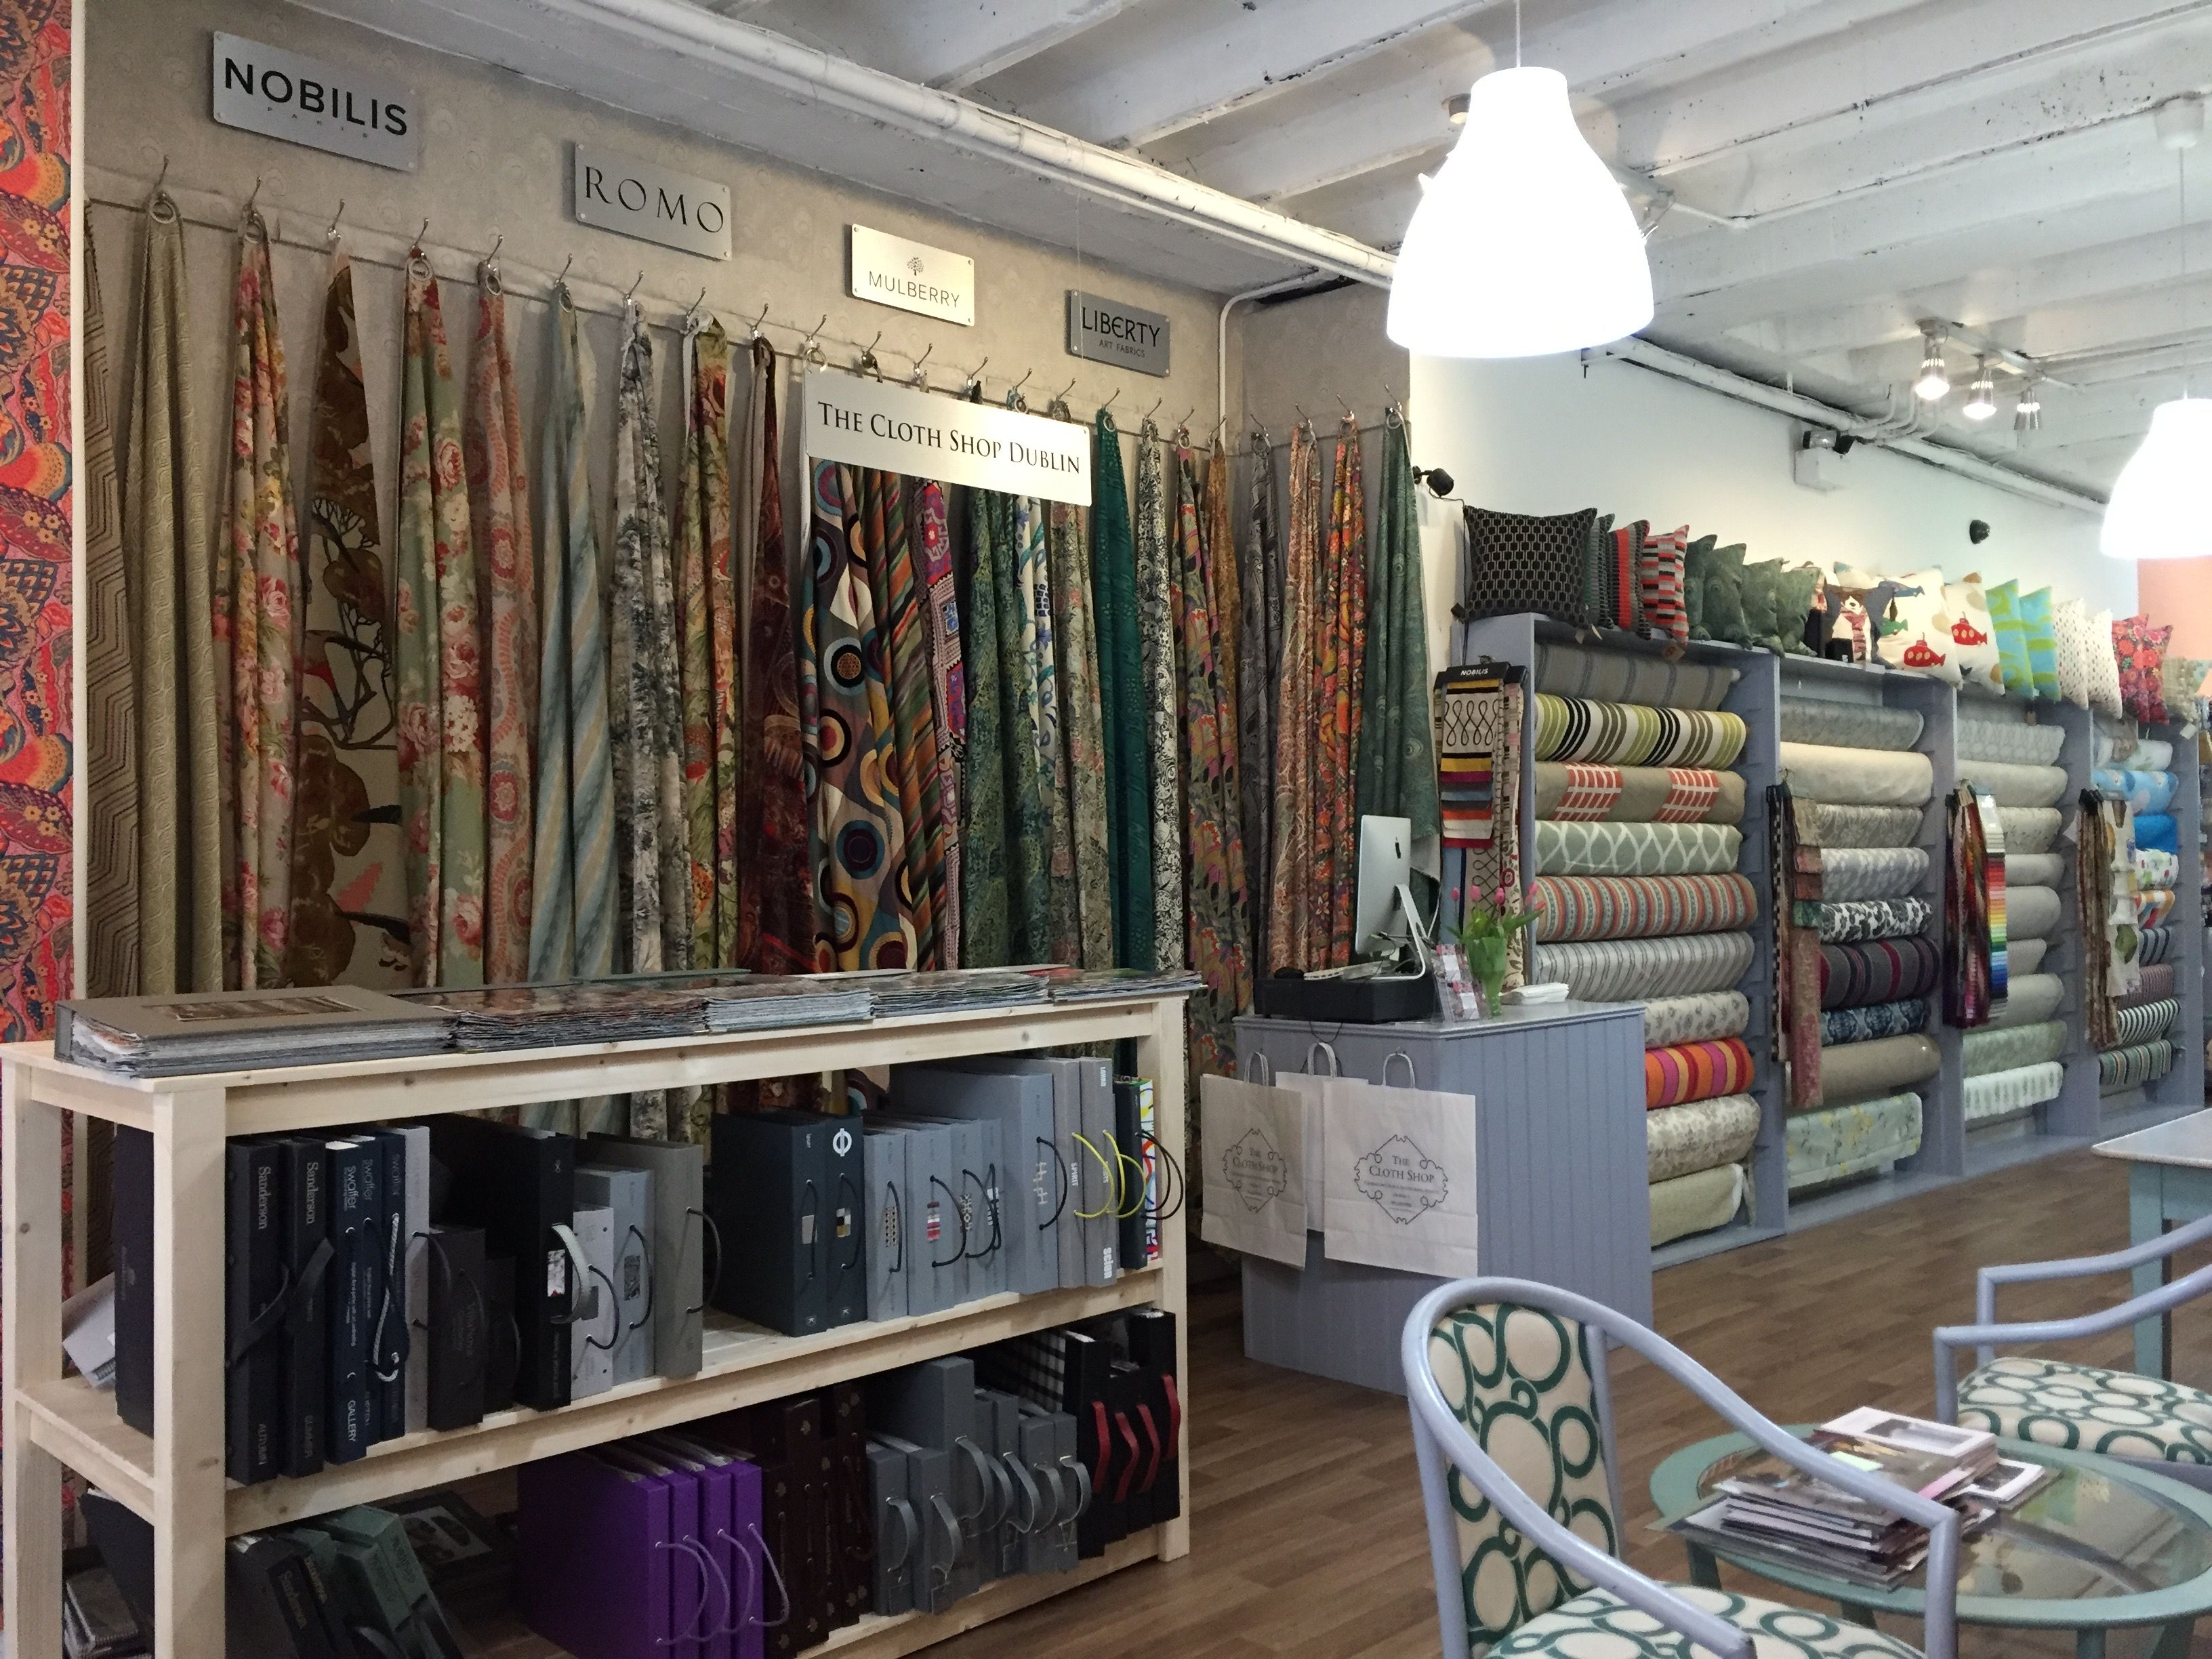 The Kilkenny Shop is Ireland's Largest supplier of Irish Craft and Design. Please enjoy browsing our site and we look forward to you purchasing online or in one of our stores nationwide.